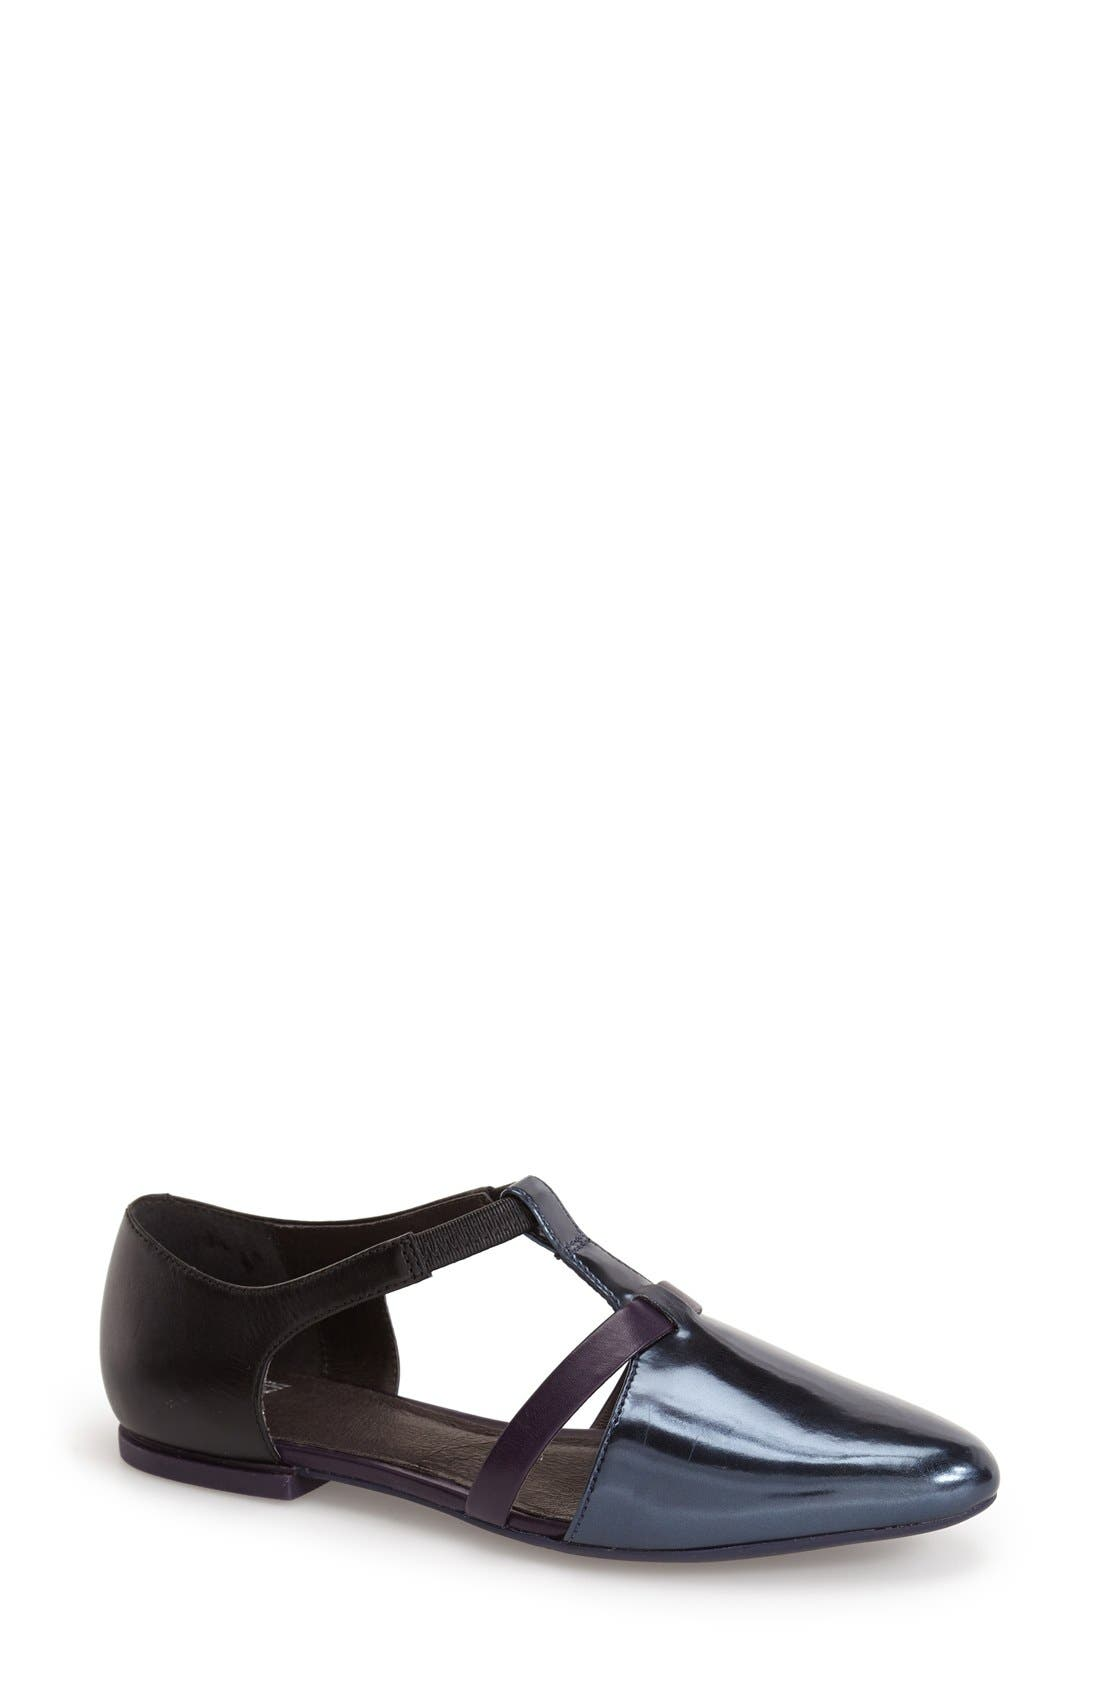 'Isadora' T-Strap Leather Flat,                             Main thumbnail 1, color,                             001